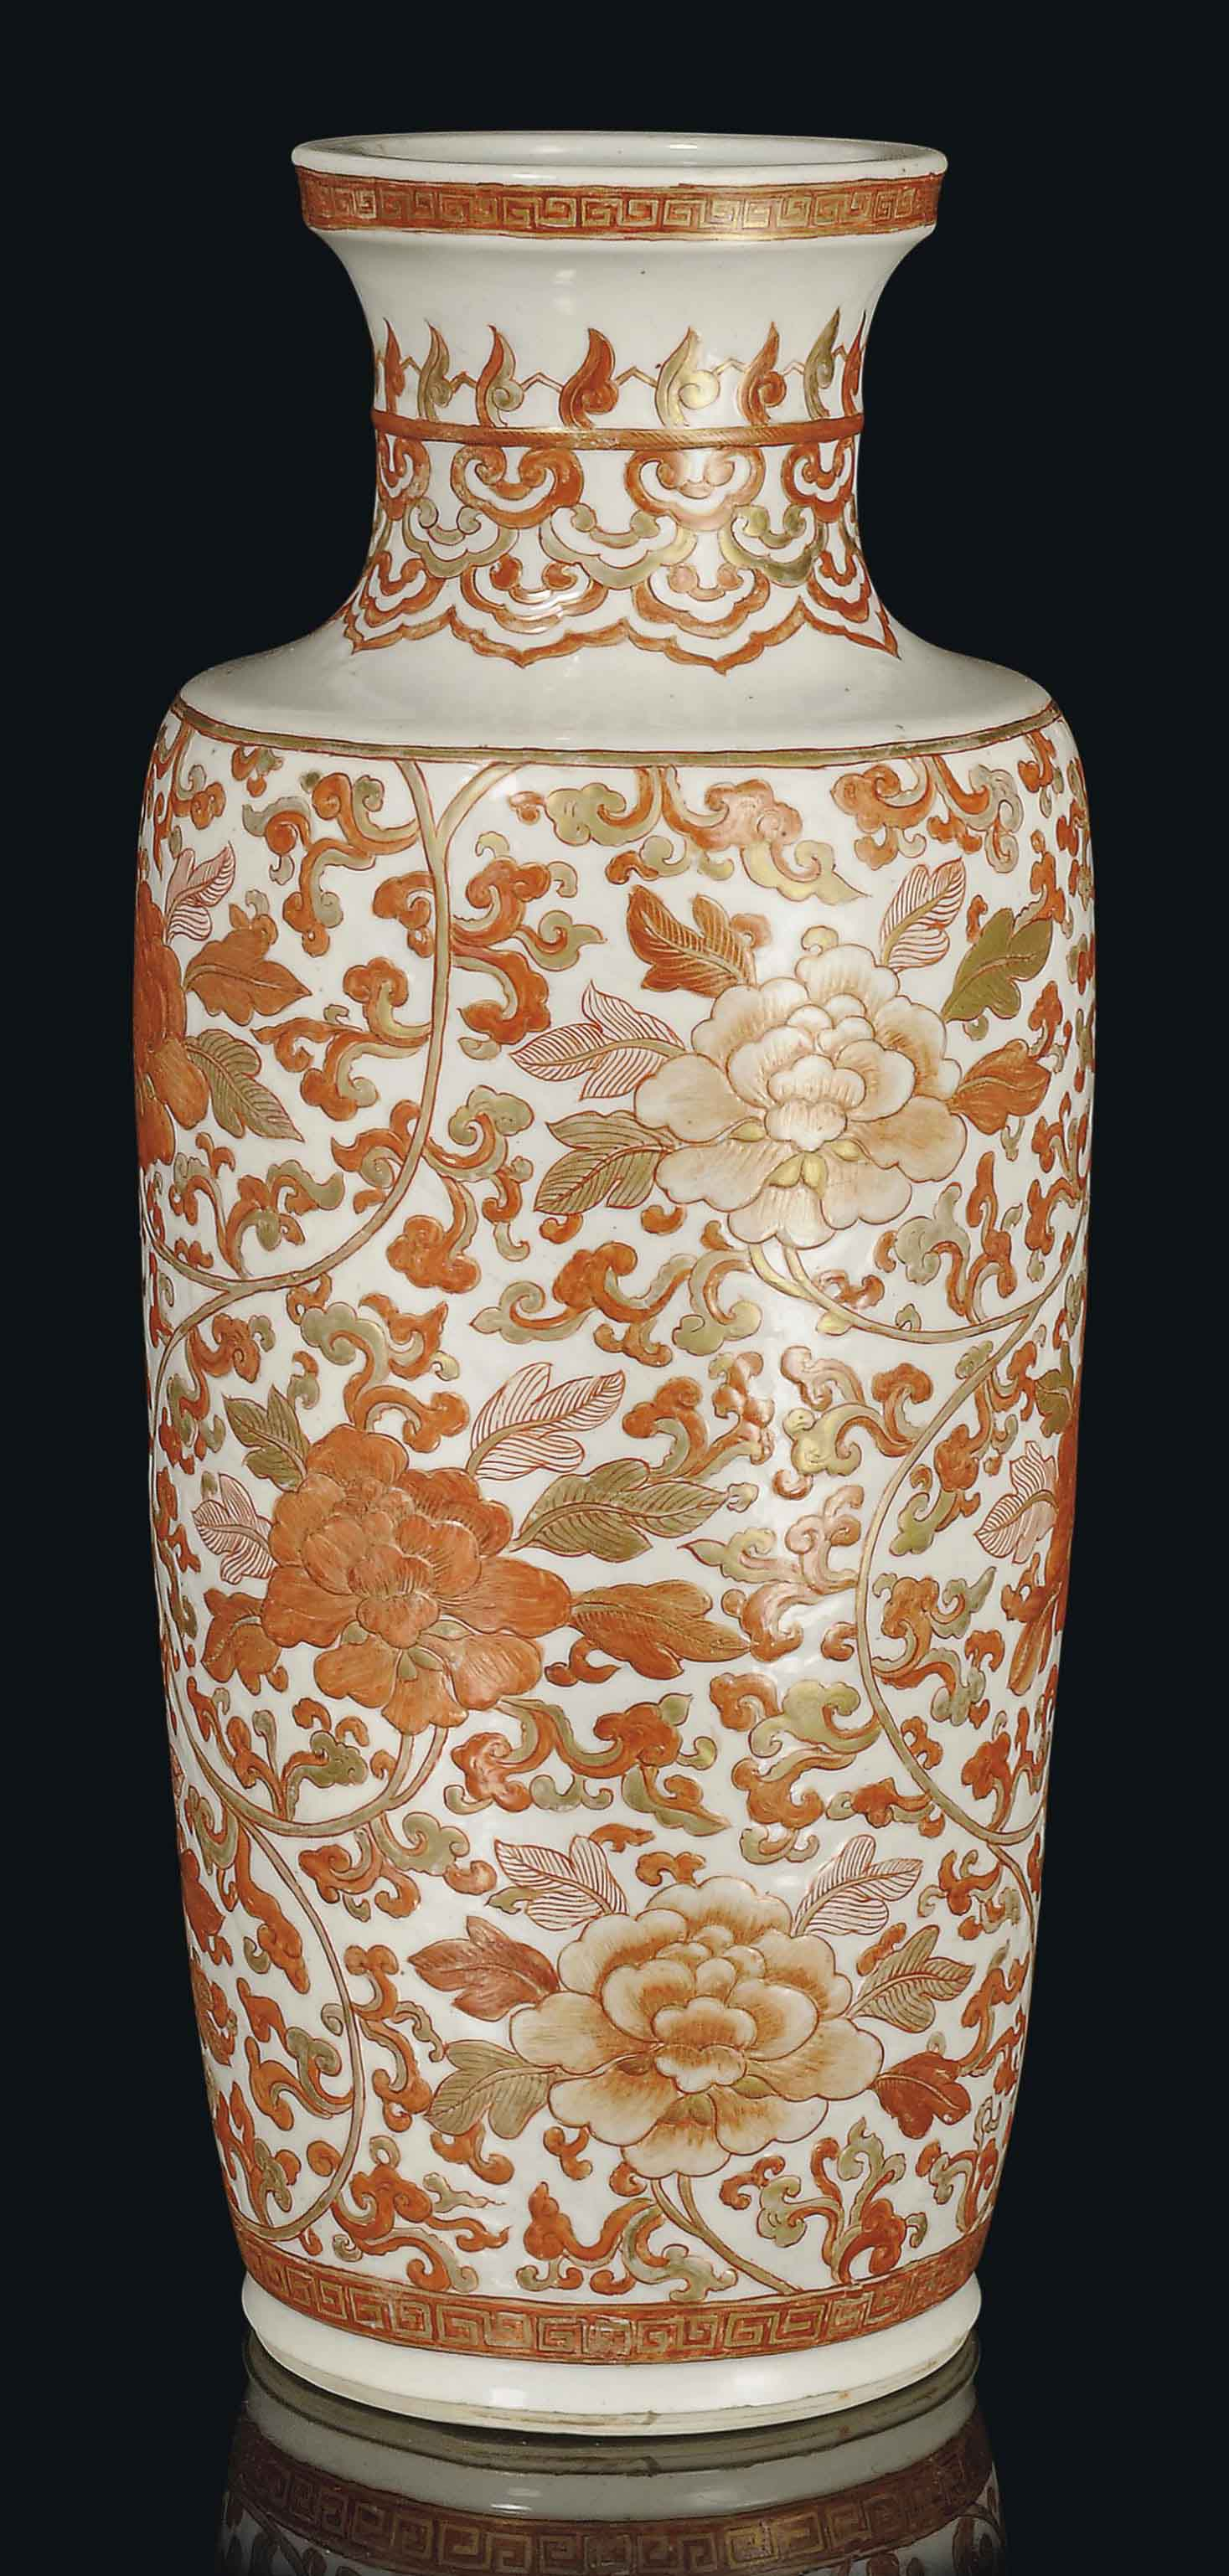 A LARGE IRON-RED AND GILT ROULEAU VASE